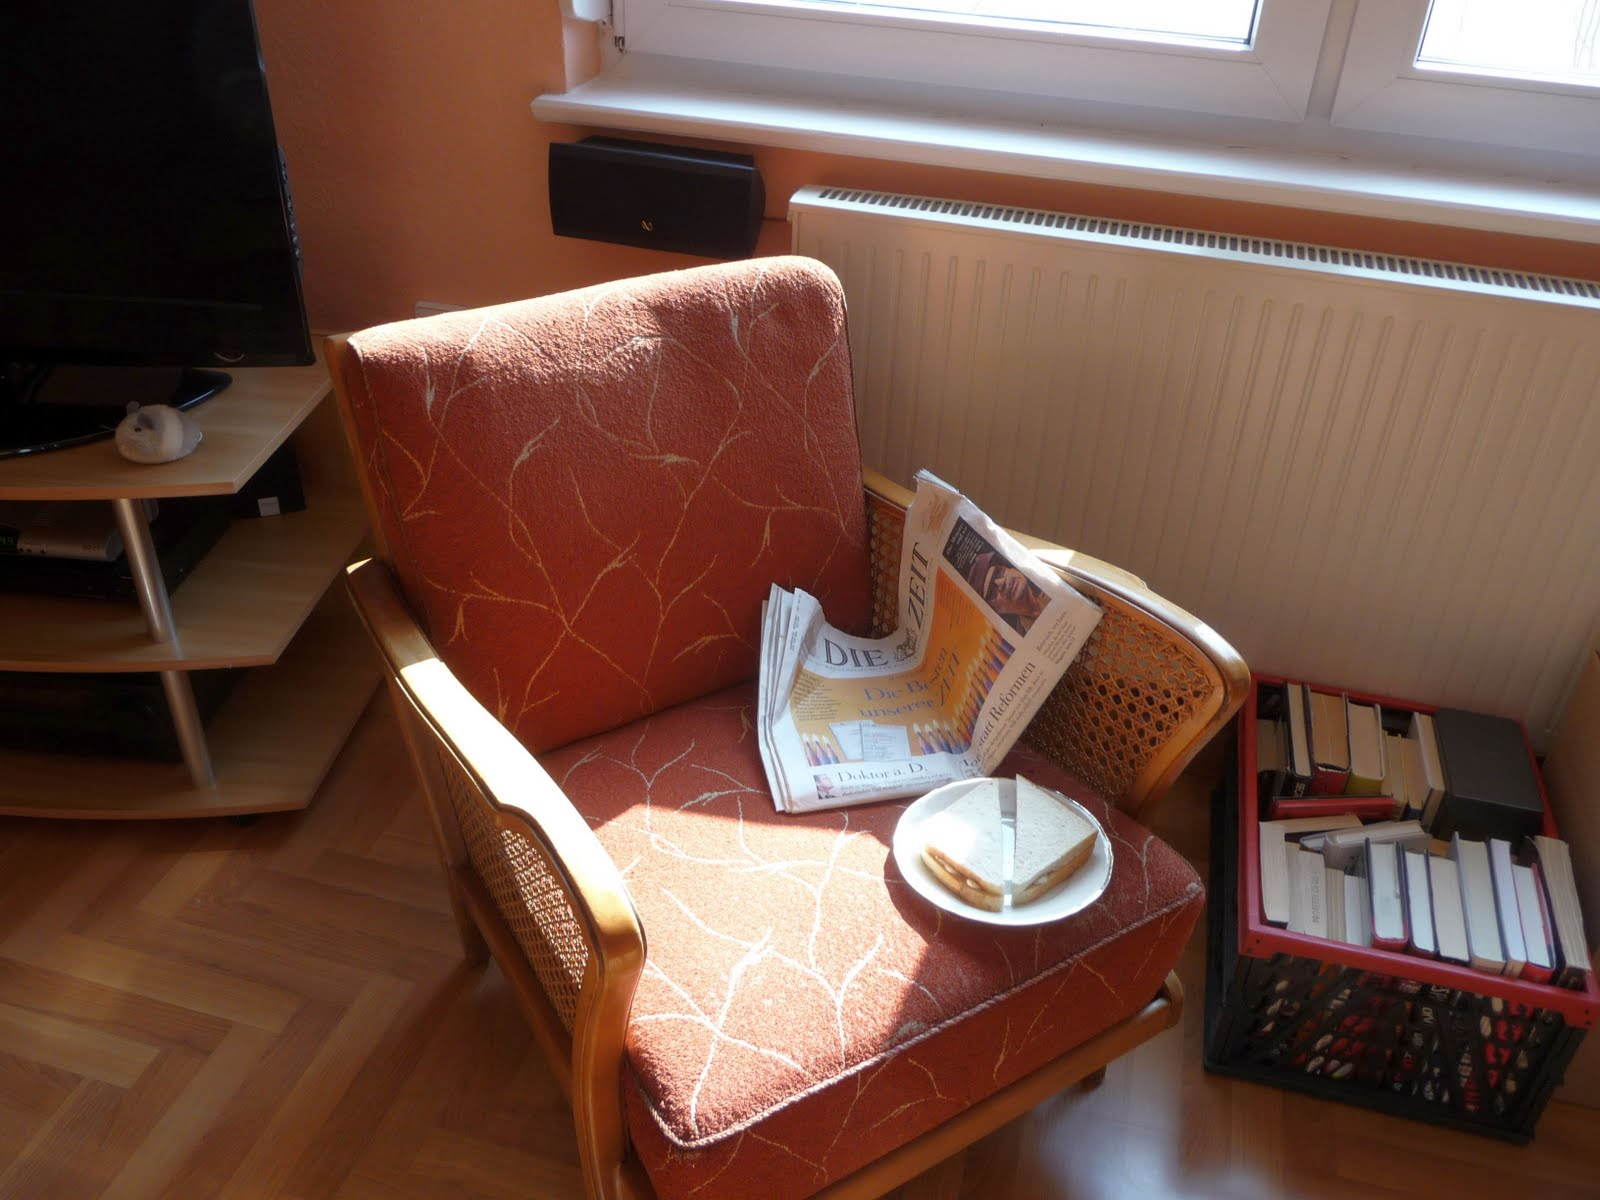 After I Was Done With The Cleaning, I Took My First Break In My New Old  Armchair, Reading The Paper And Having A Sandwich.